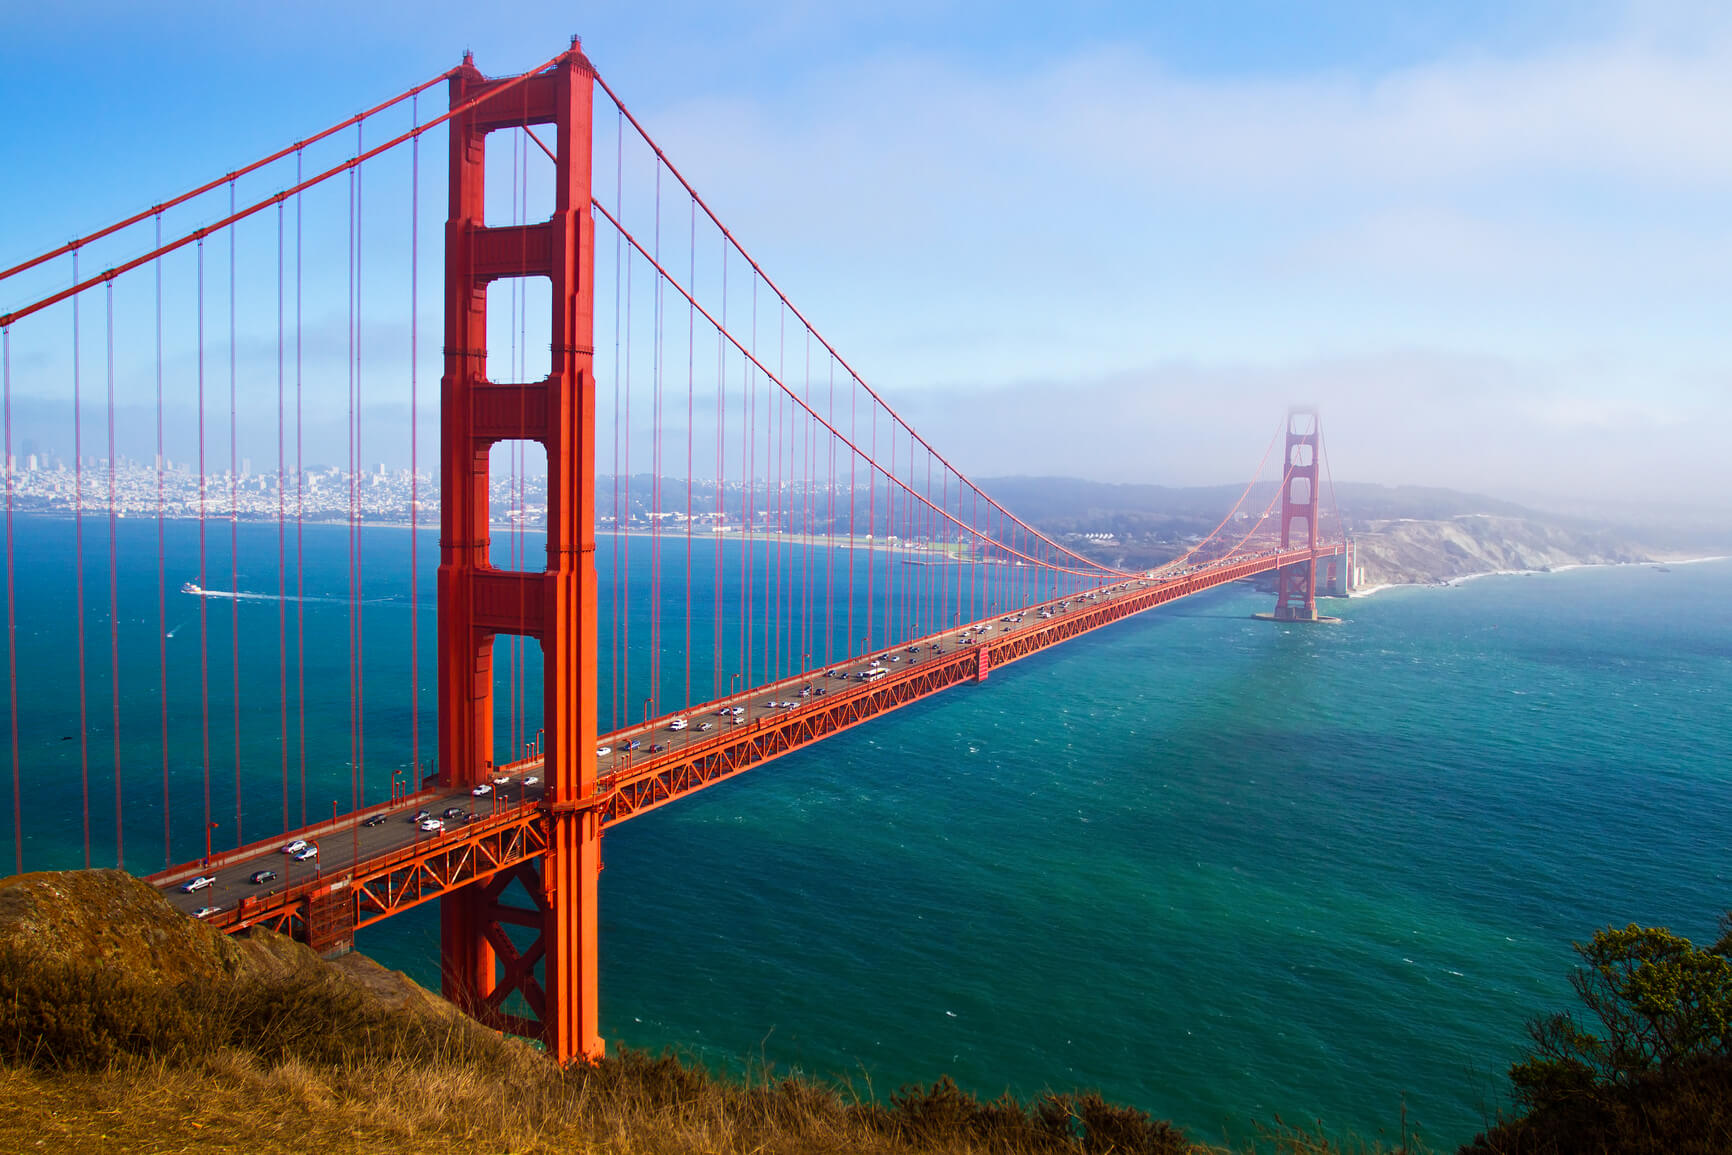 Non-stop from Los Angeles to San Francisco (& vice versa) for only $38 roundtrip (Oct-Feb dates)